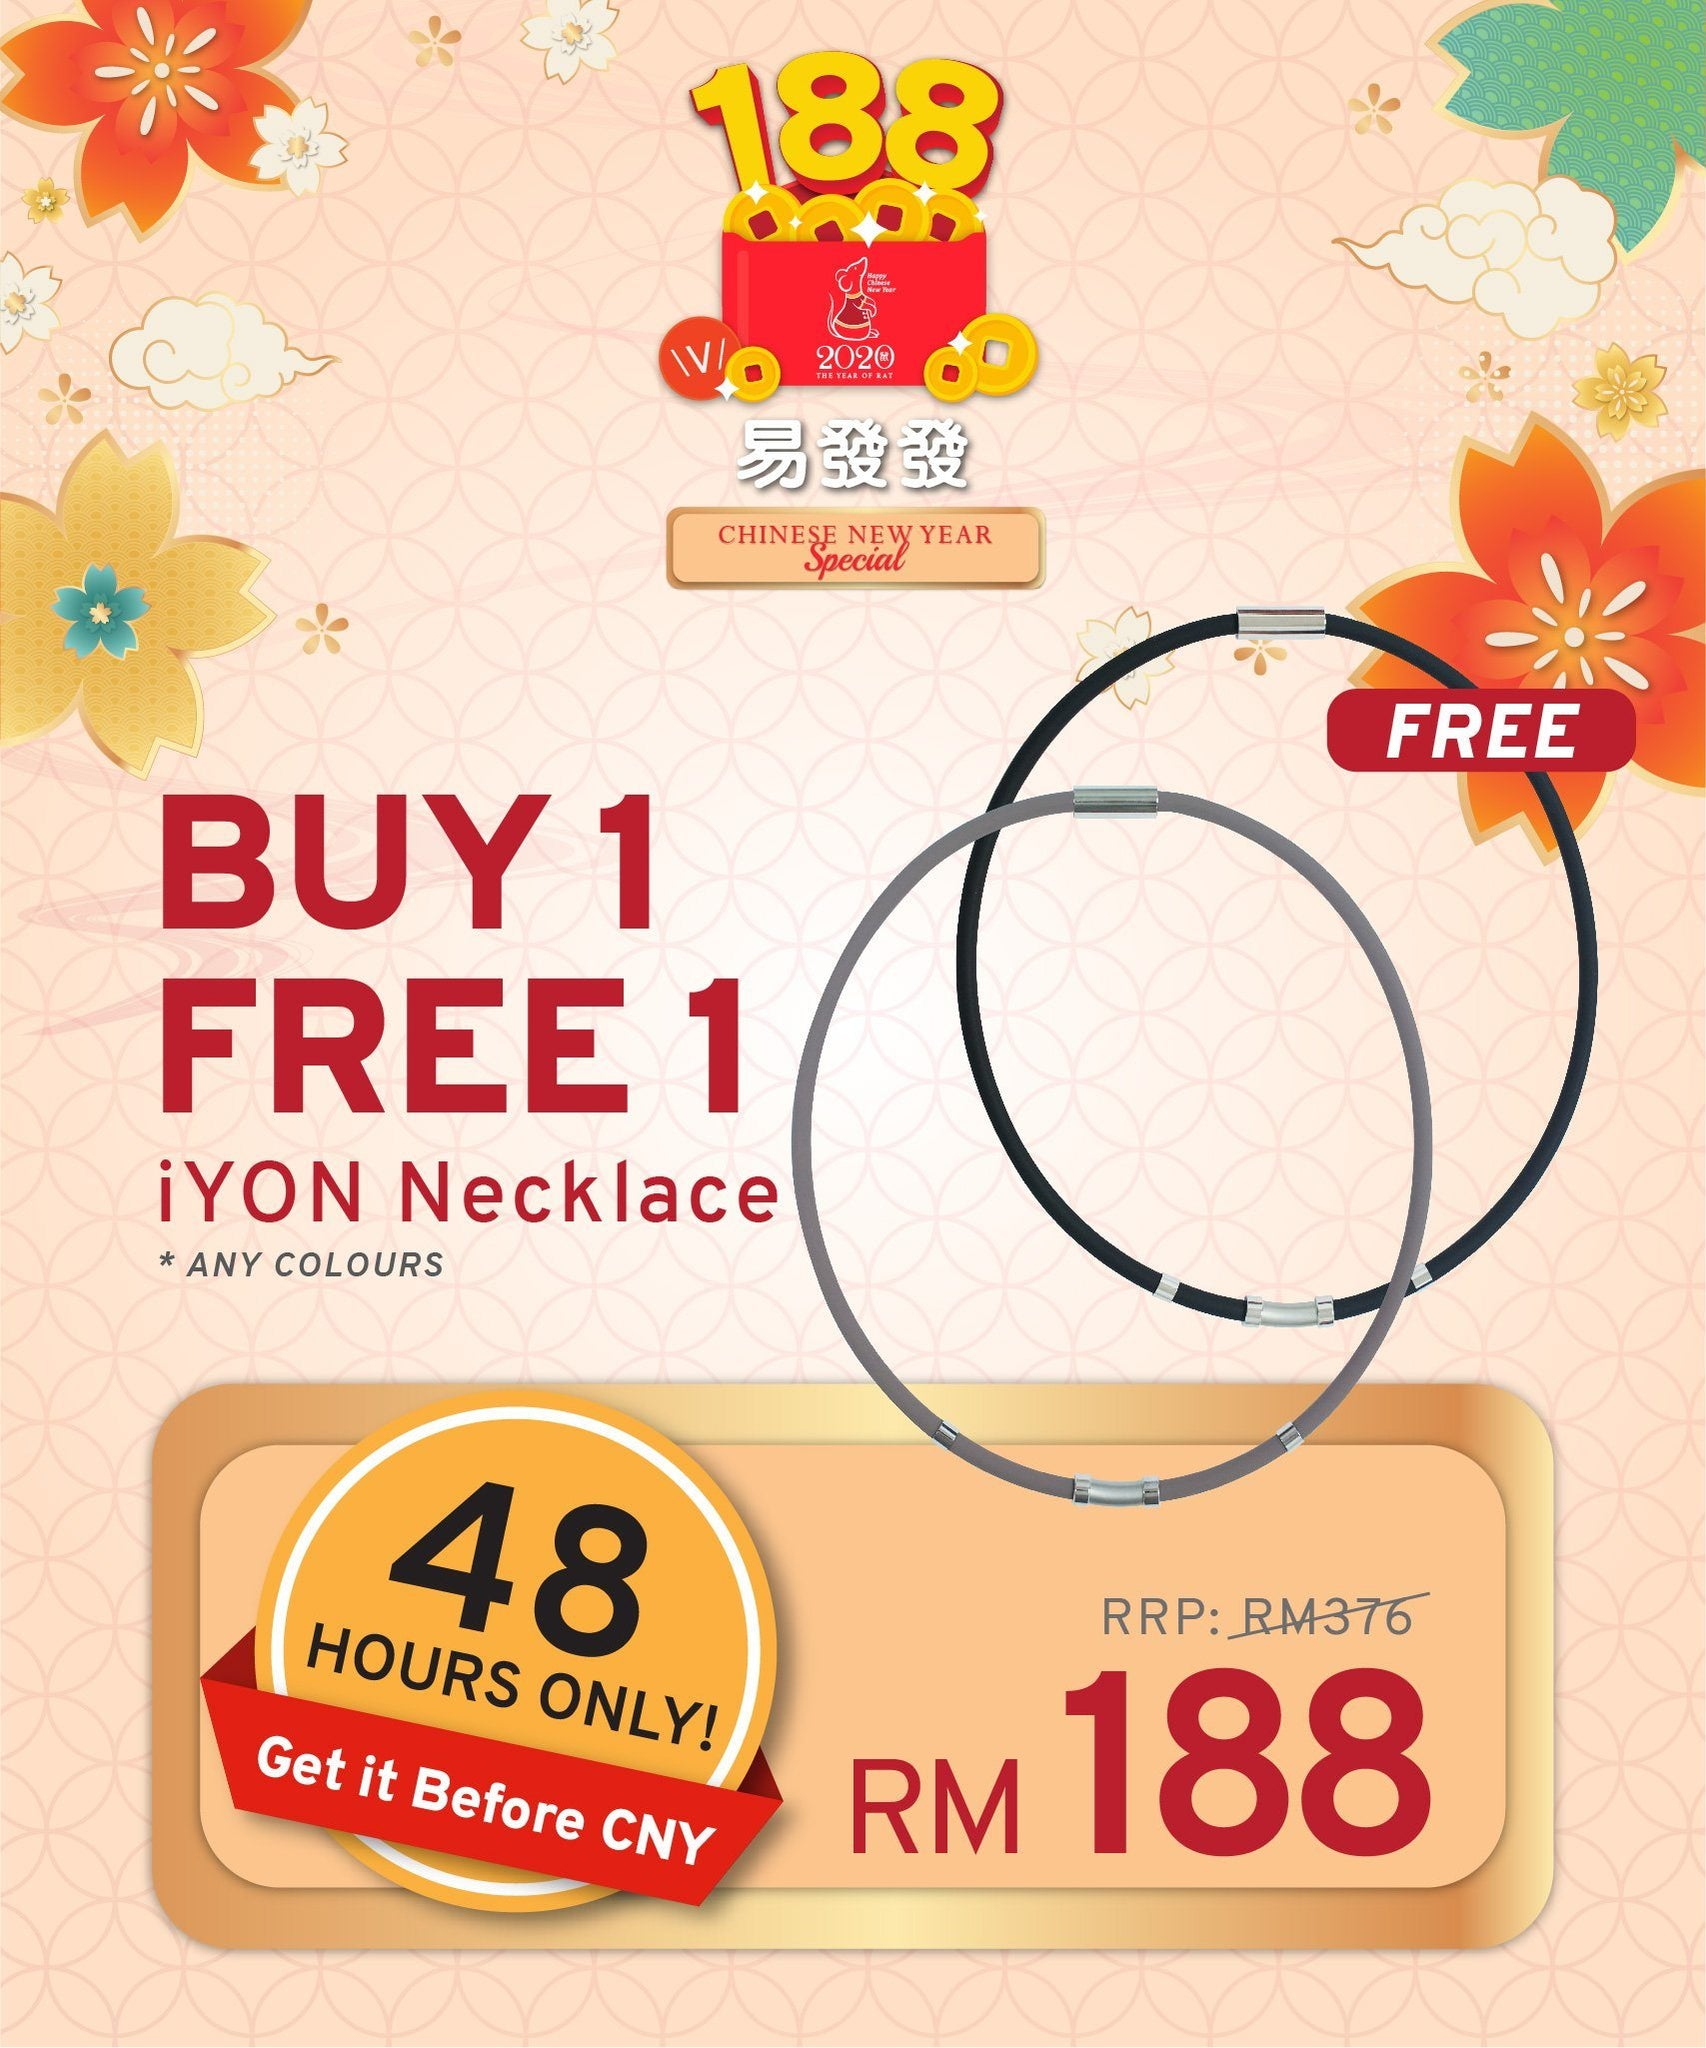 48 HOURS ONLY, BUY 1 FREE 1 iYON NECKLACE - Get it Before CNY